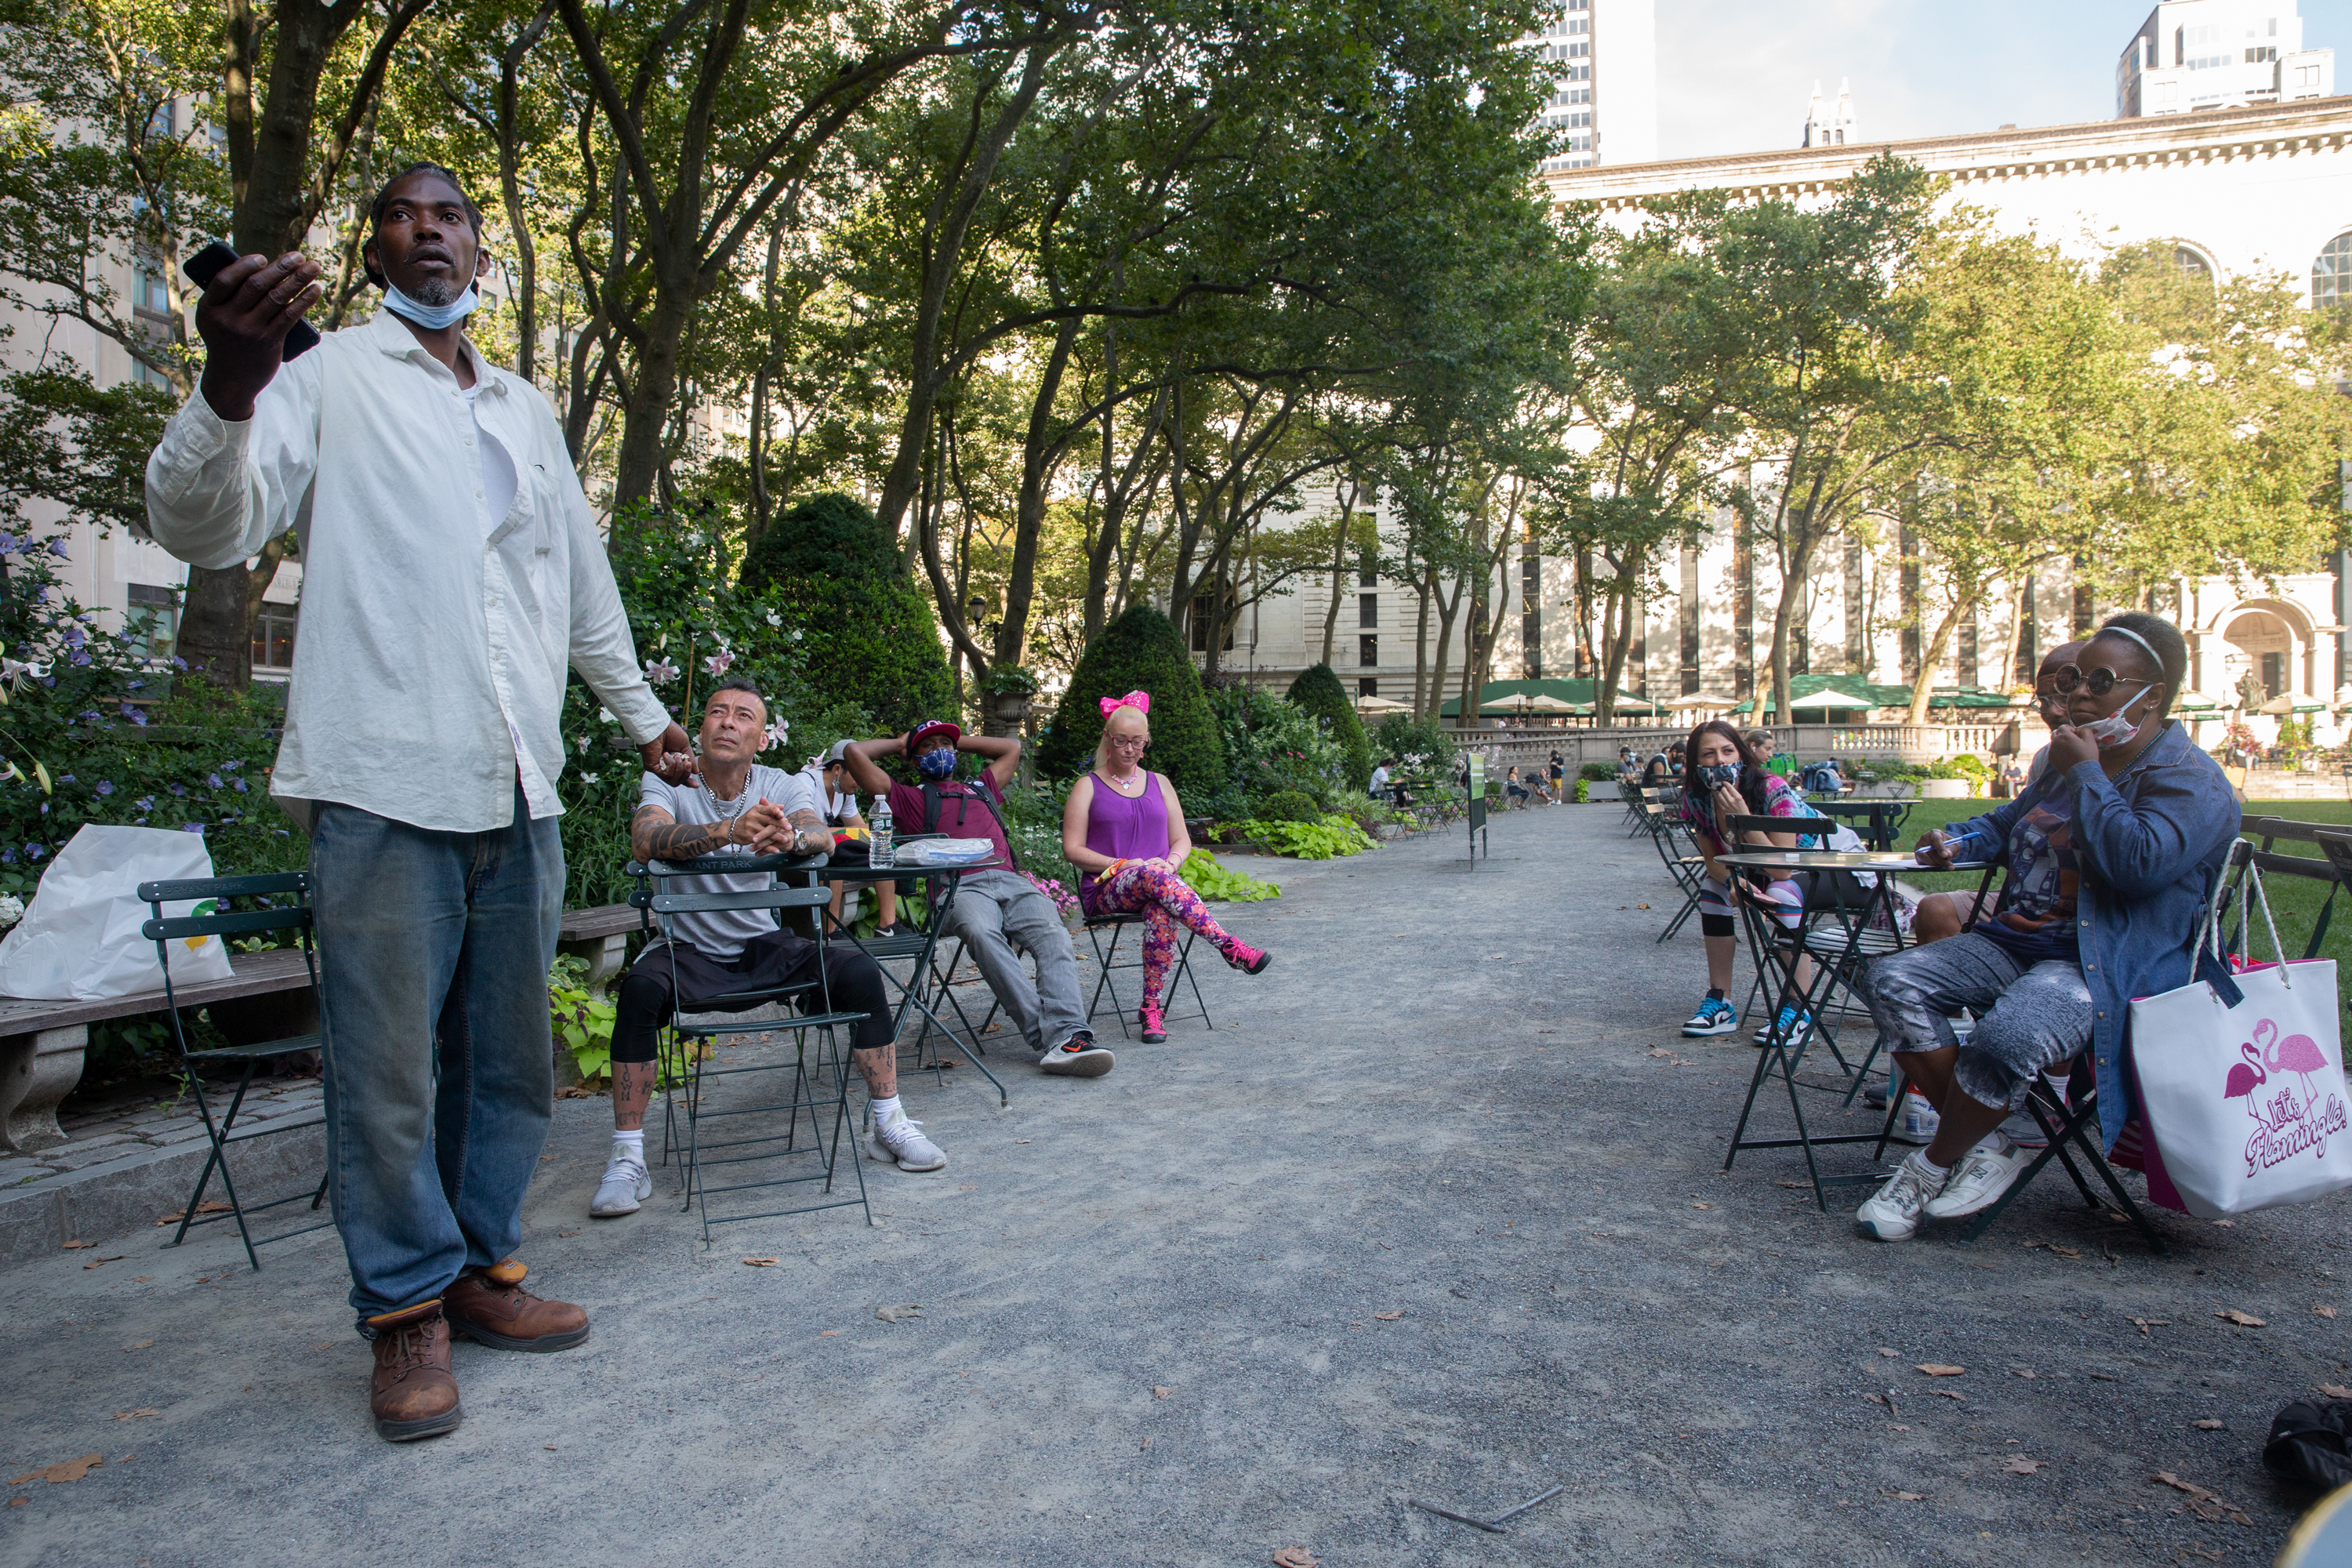 Marcus Moore, left, speaks to a group of fellow homeless people in Bryant Park about how to pressure the city to pay for hotel rooms they've been staying in during the pandemic, on July 15, 2020.